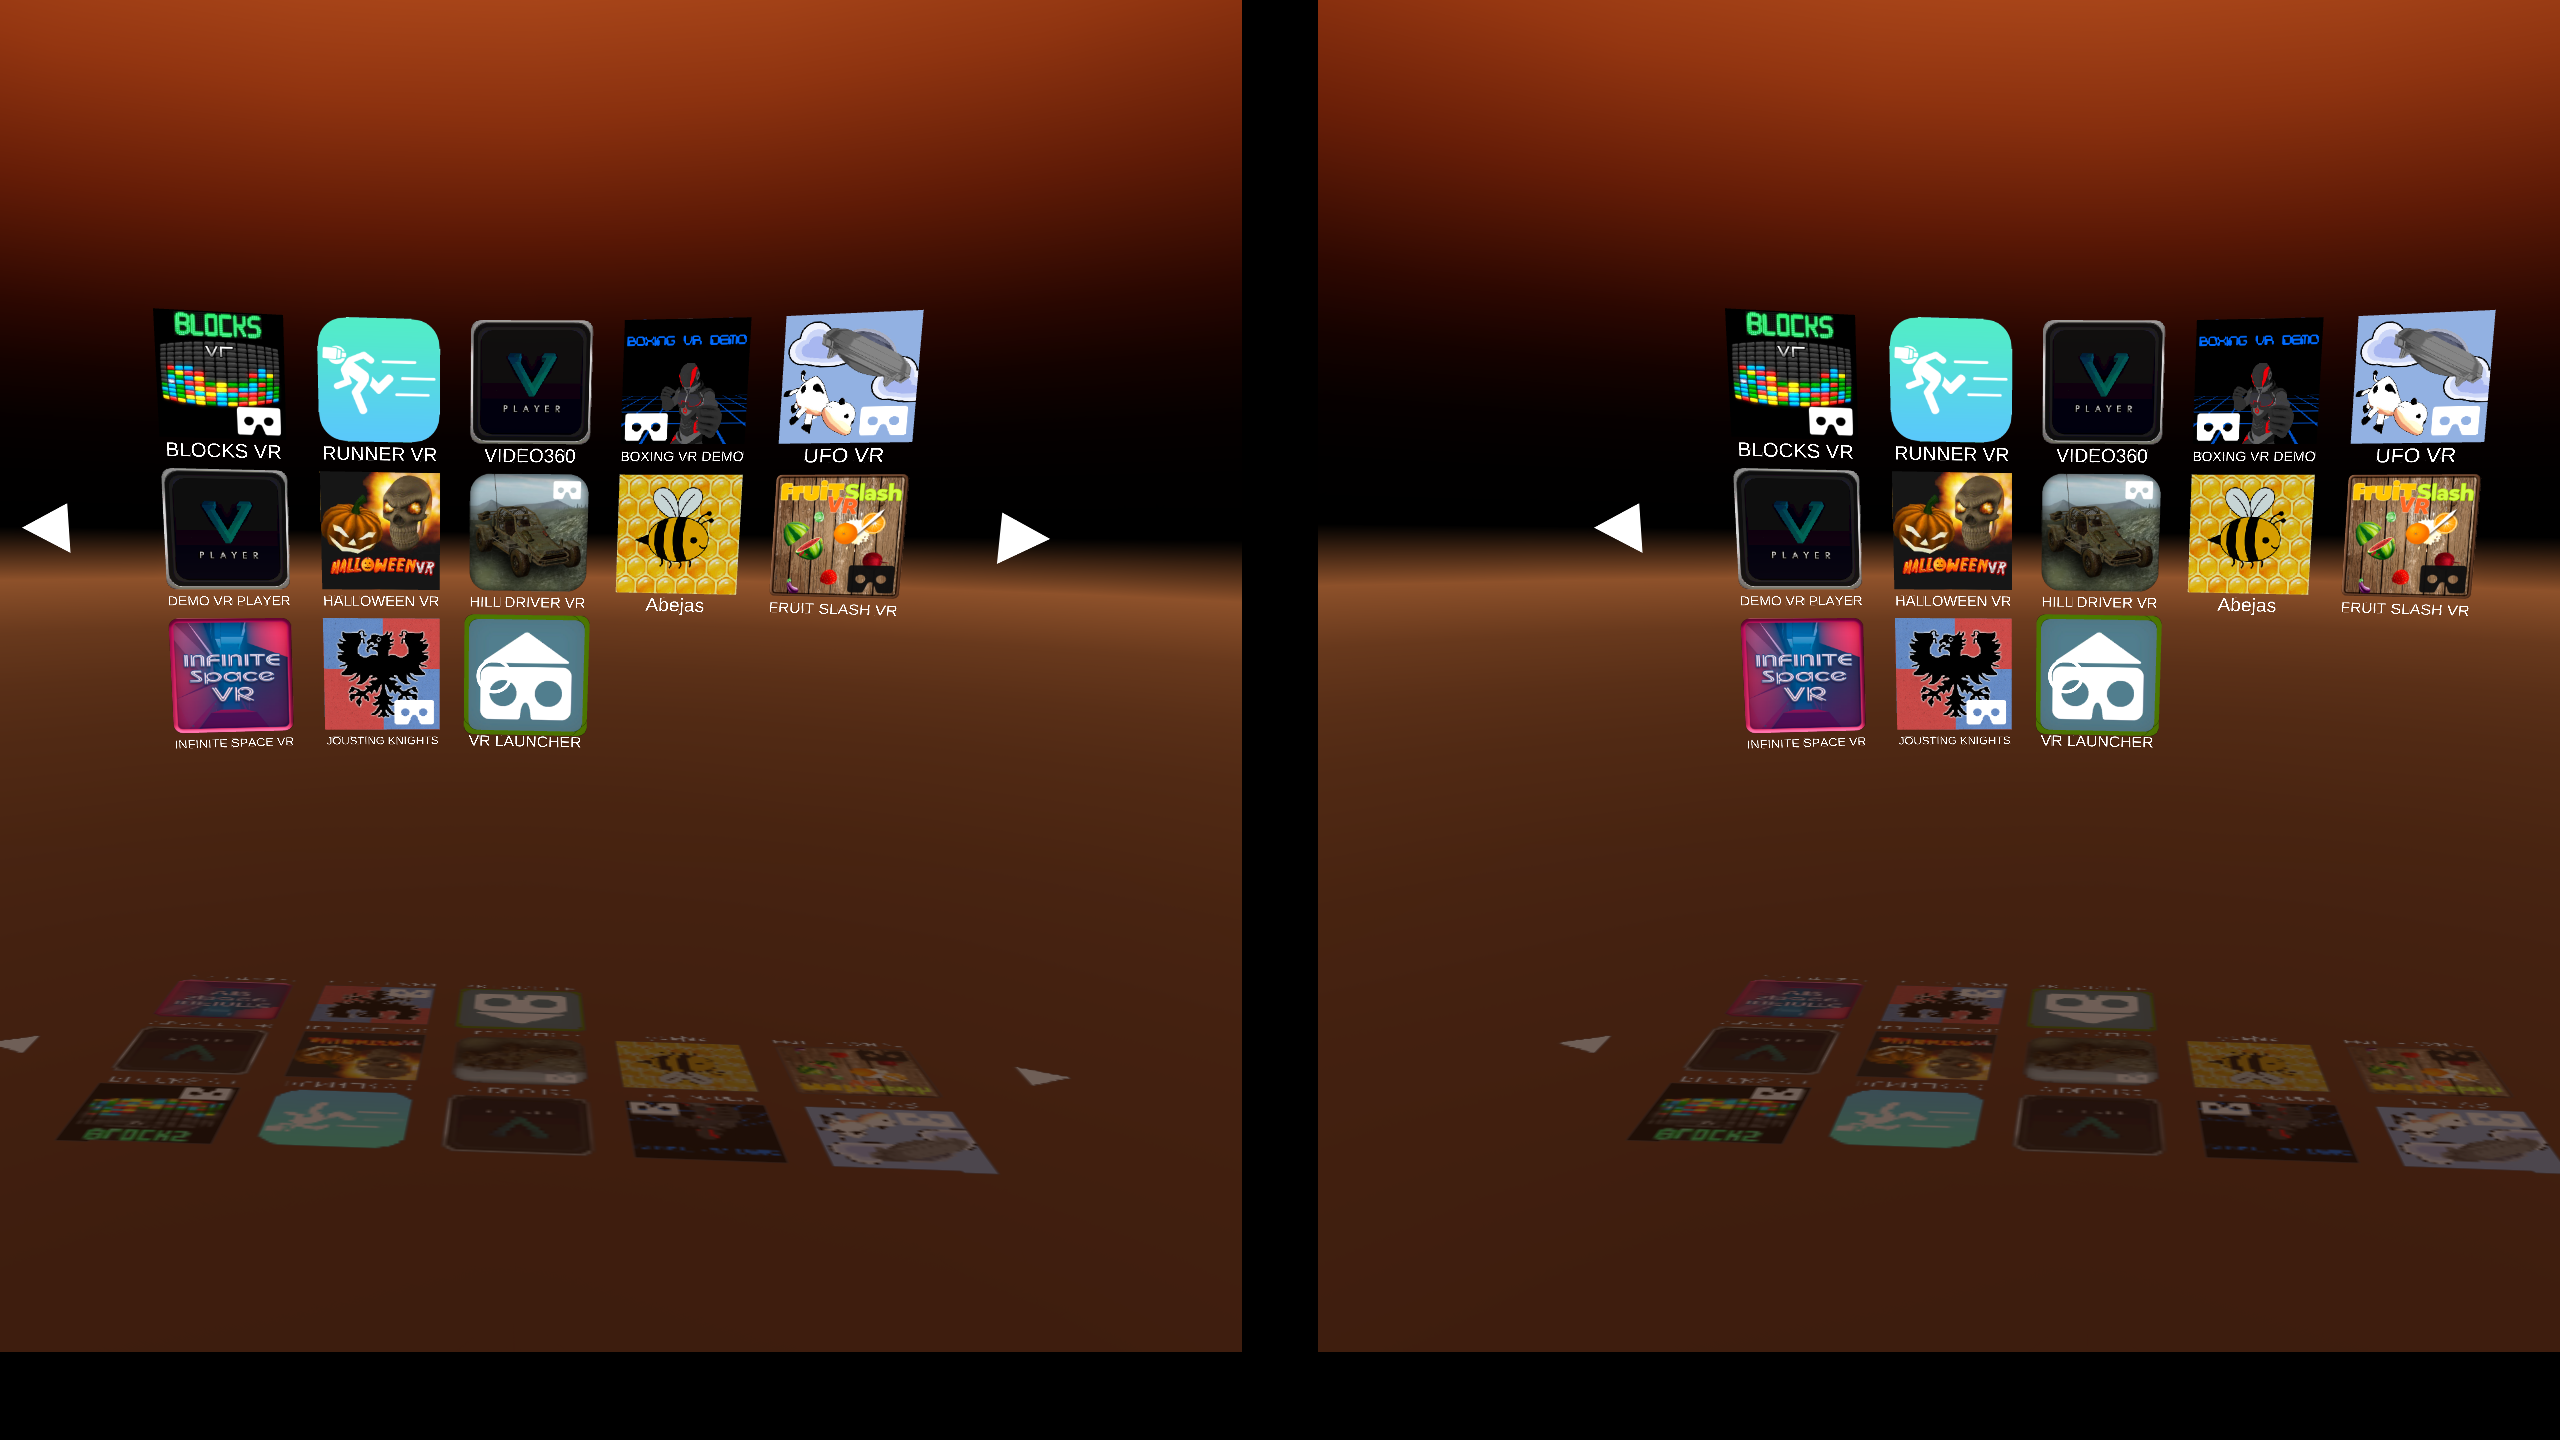 screenshot 3 LAUNCHER VR content image